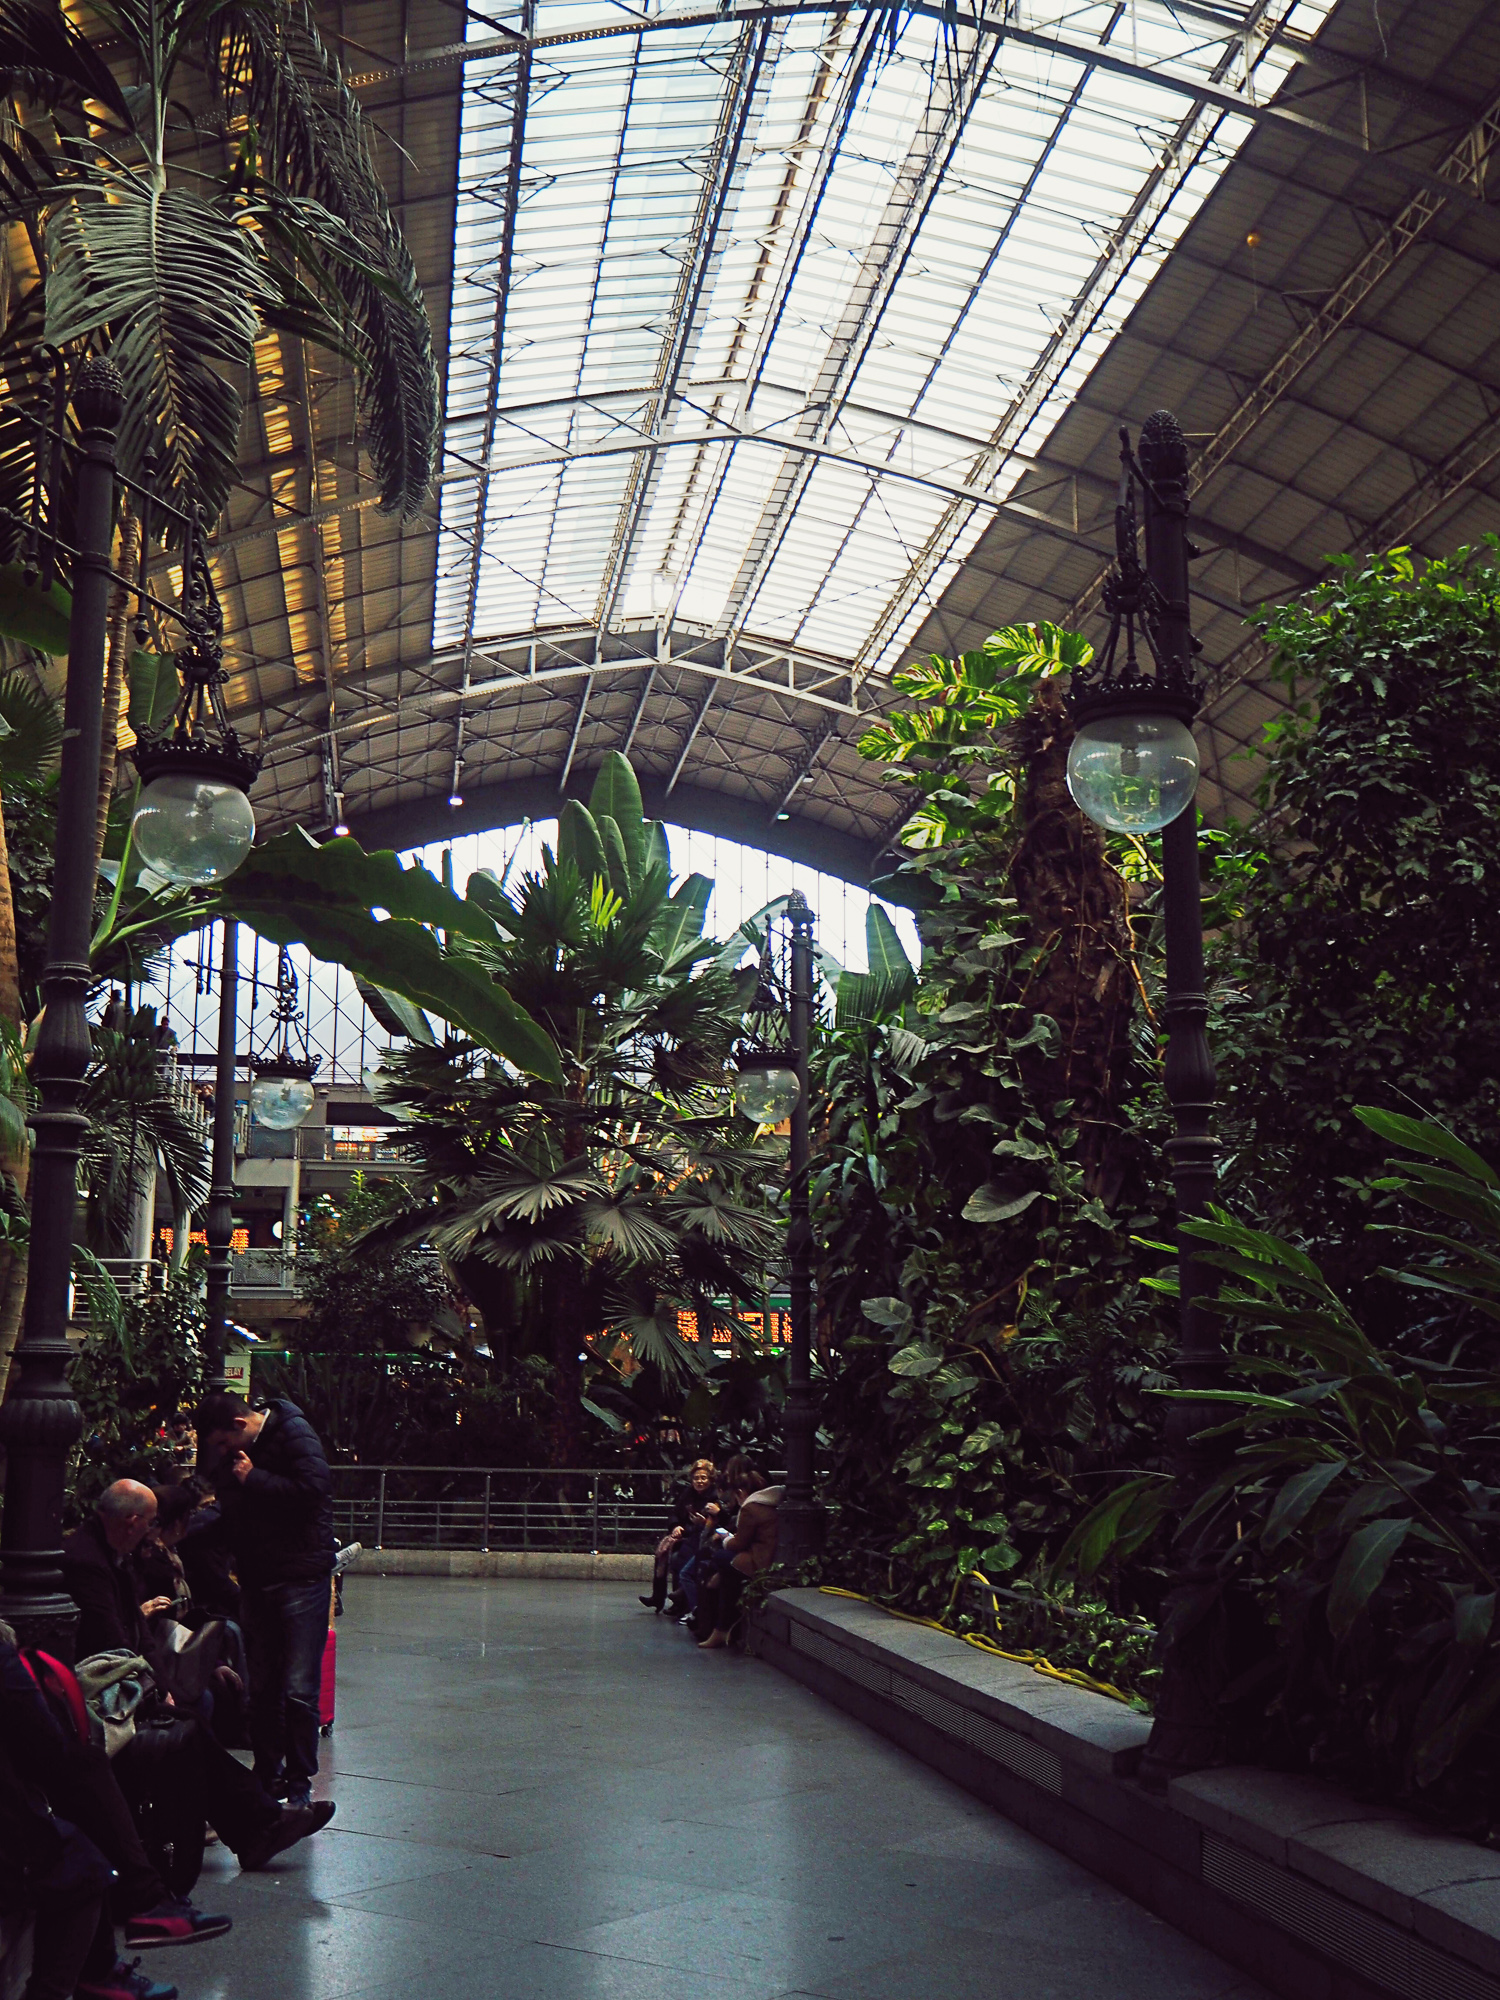 Atocha Old Central Station